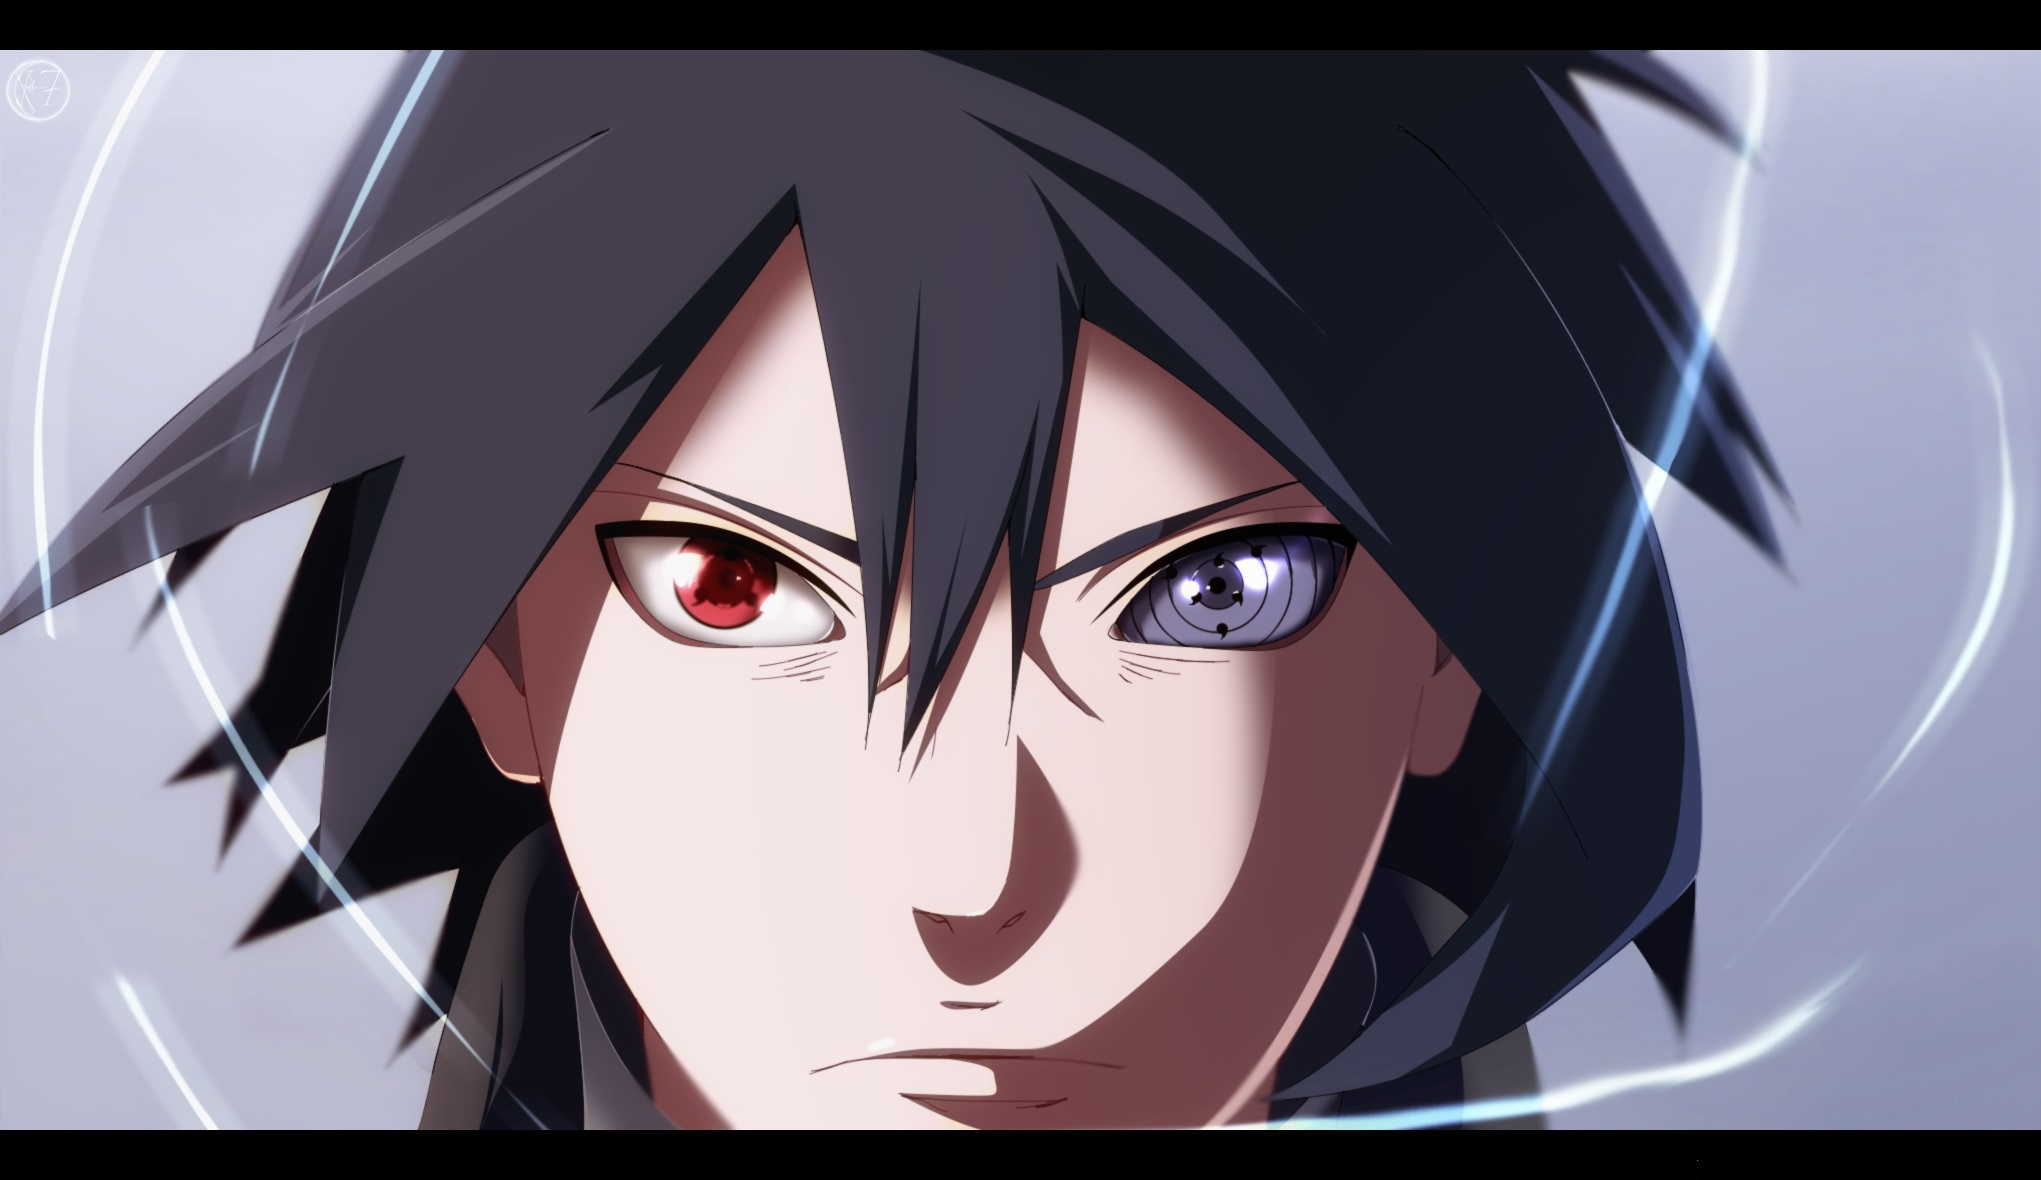 Sasuke Uchiha Wallpapers Images Photos Pictures Backgrounds HD Wallpapers Download Free Images Wallpaper [1000image.com]